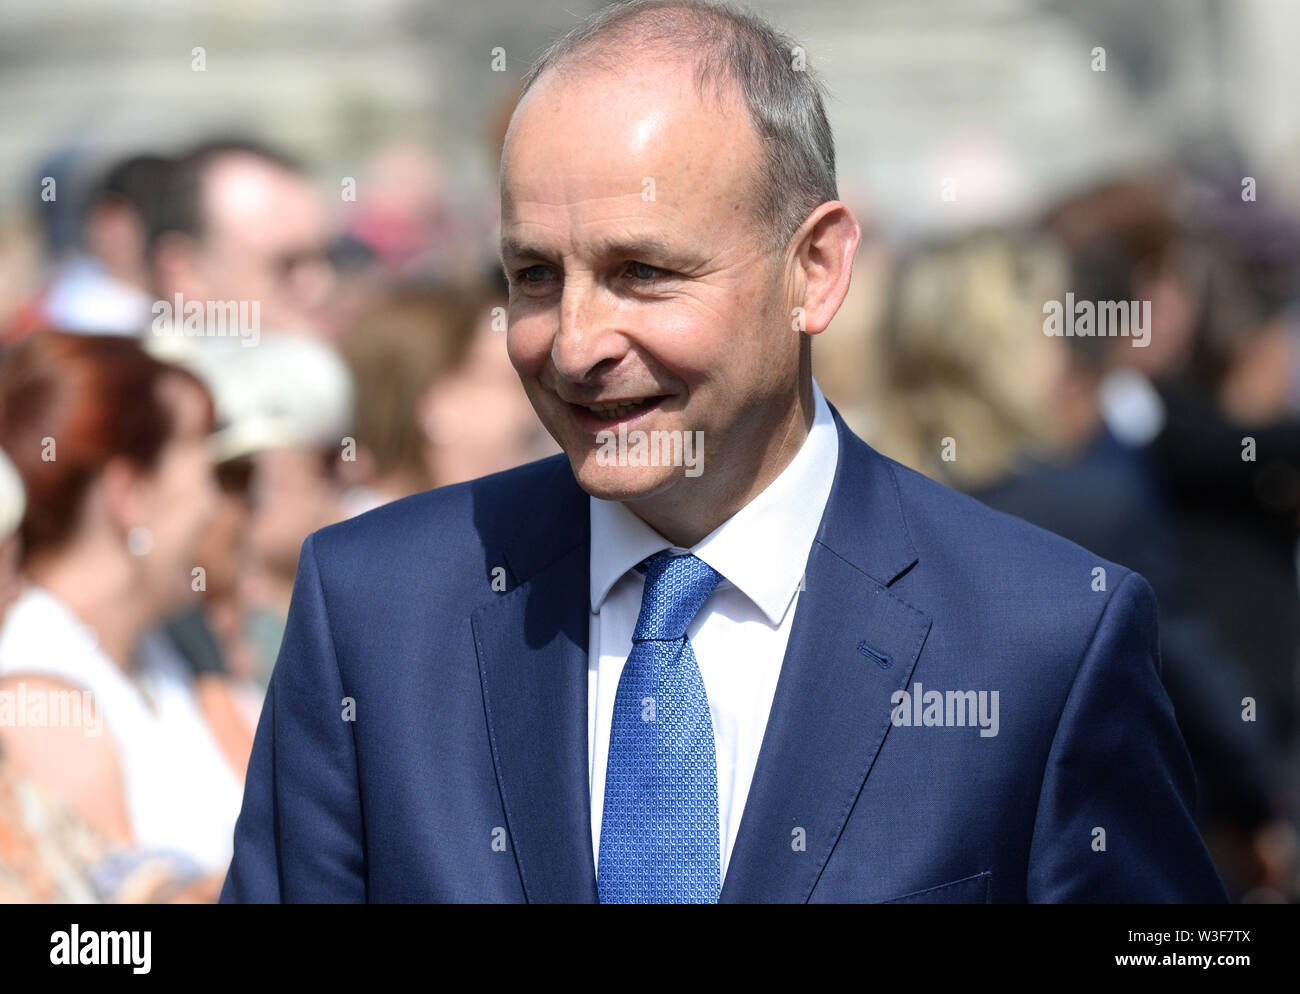 Fianna Fail leader Michael Martin arrives for the funeral of Father Ted star Brendan Grace at the Church of St. Nicholas of Myra, Dublin. - Stock Image